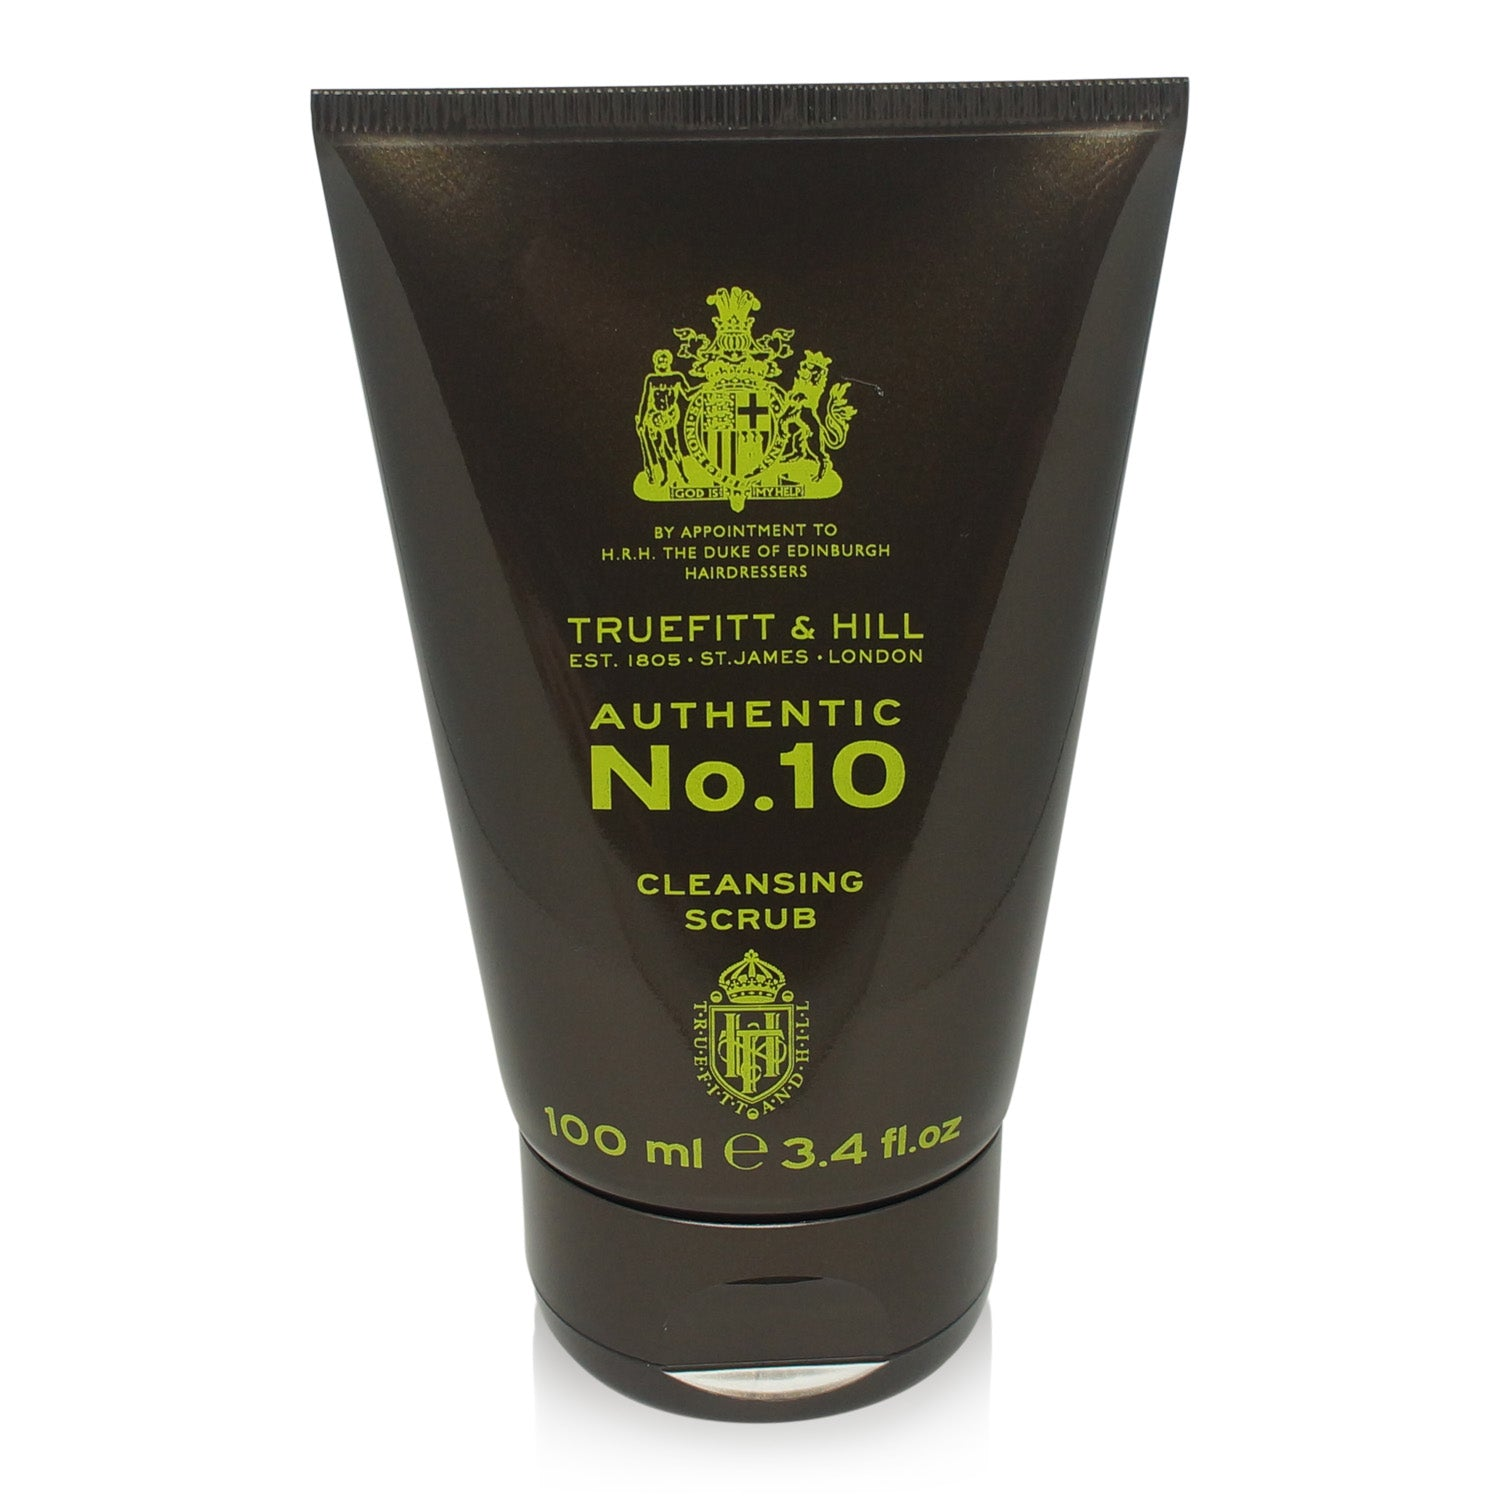 TRUEFITT ~ AUTHENTIC NO. 10 CLEANSING SCRUB